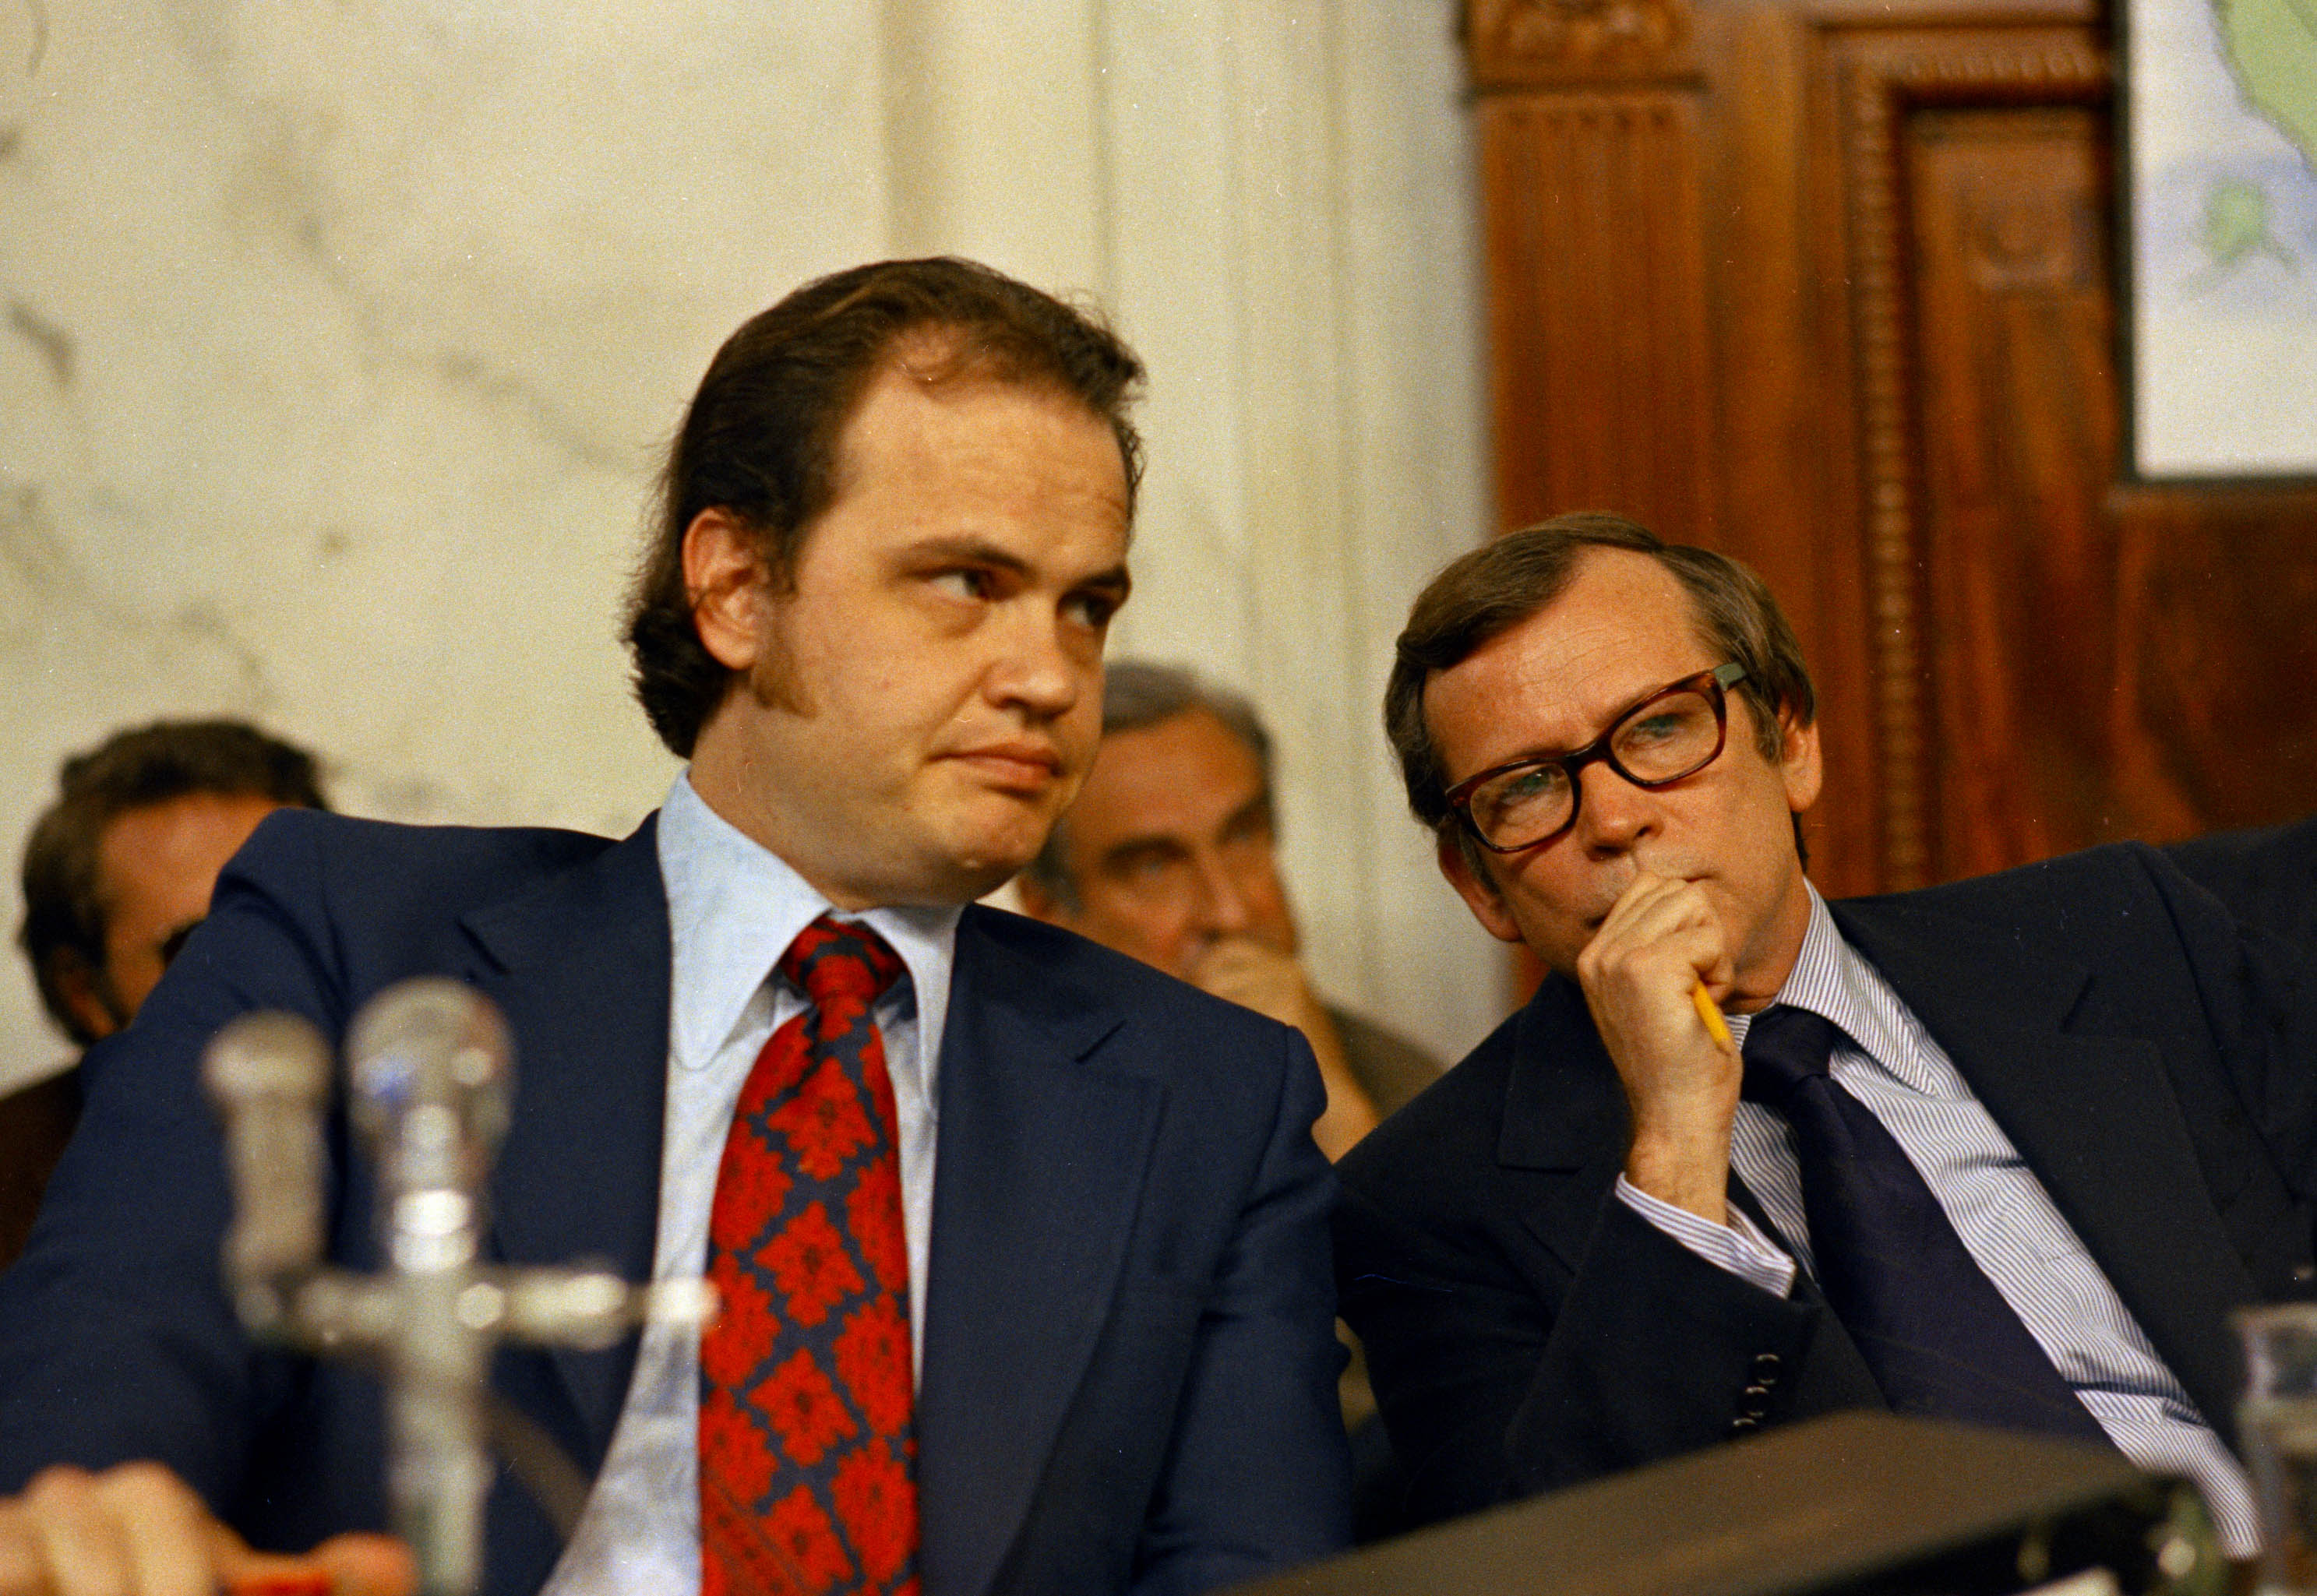 Baker Thompson Sen. Fred D. Thompson, Chief Minority Counsel of the Senate Watergate Committee, is seen with Sen. Howard Baker (R-Tenn.), during the Watergate hearings in WashingtonWatergate Fred Thompson 1973, Washington, USA